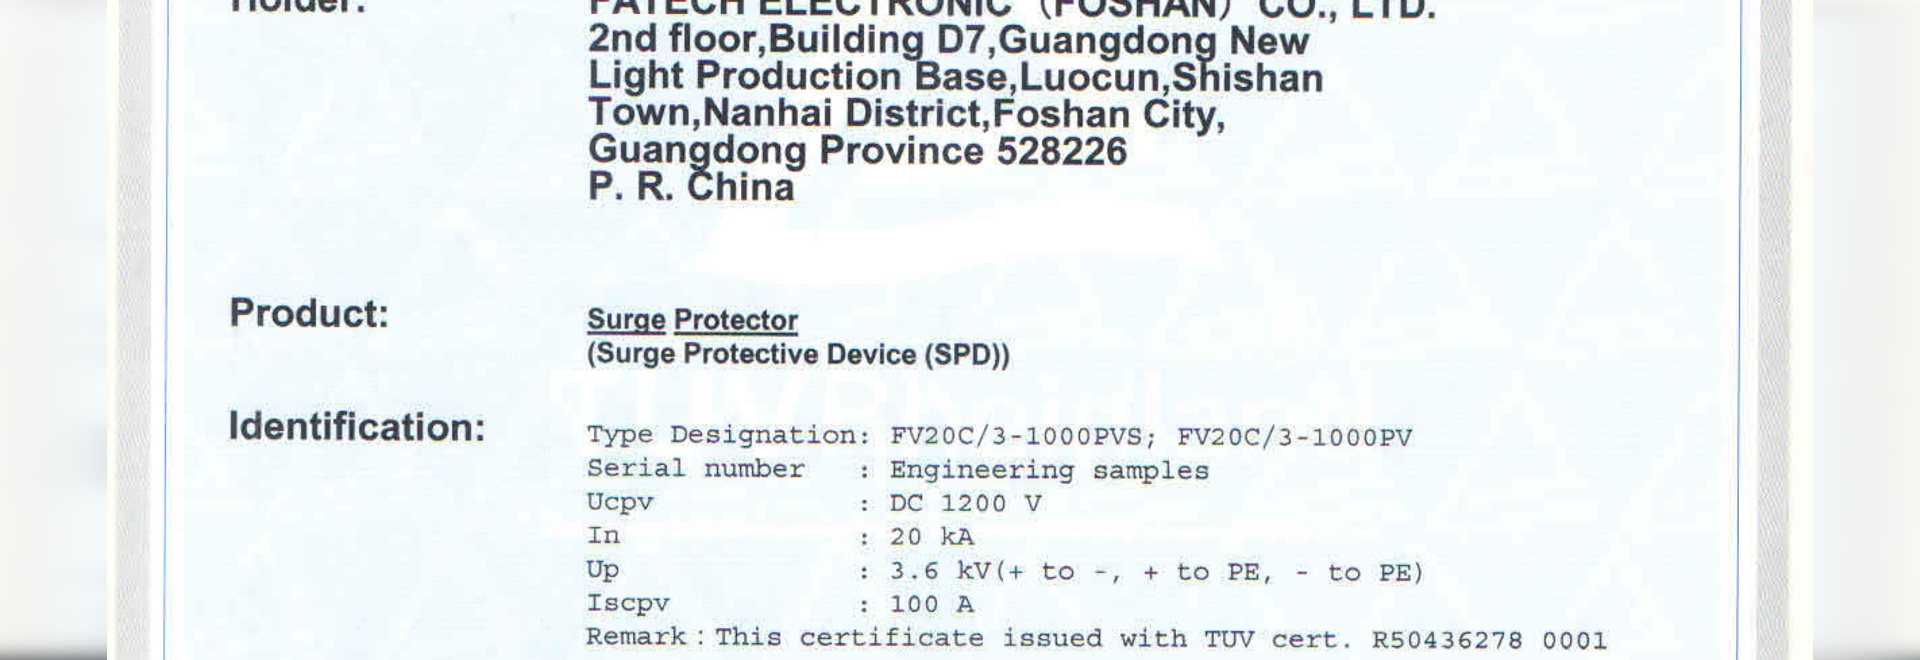 FATECH DC SURGE PROTECTIVE DEVICE (SPD) ELIGIBLE TUV INTERNATIONAL CERTIFICATION